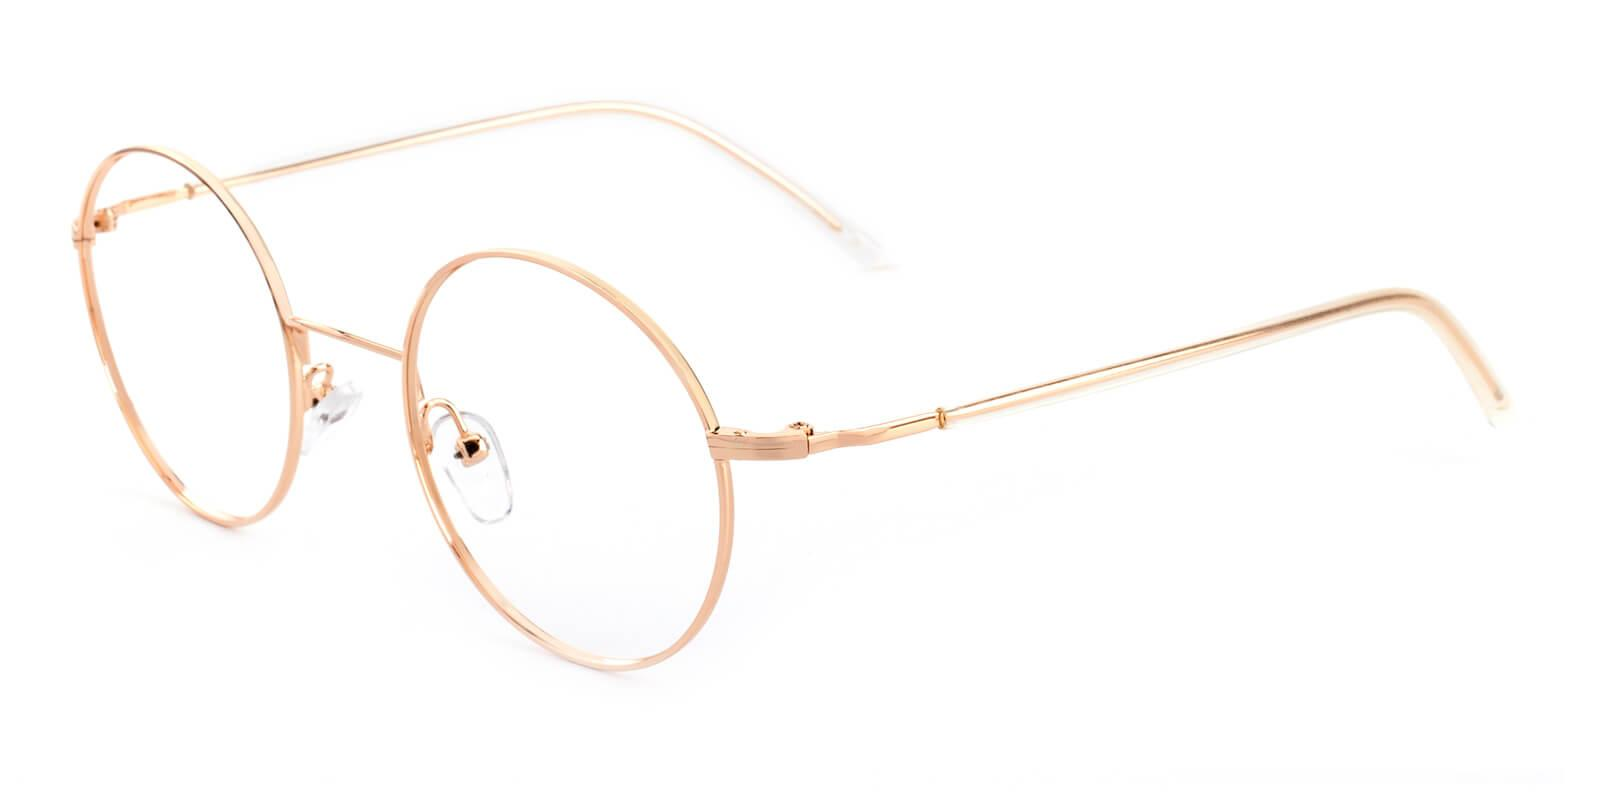 Maddy-Gold-Round-Metal-Eyeglasses-additional1